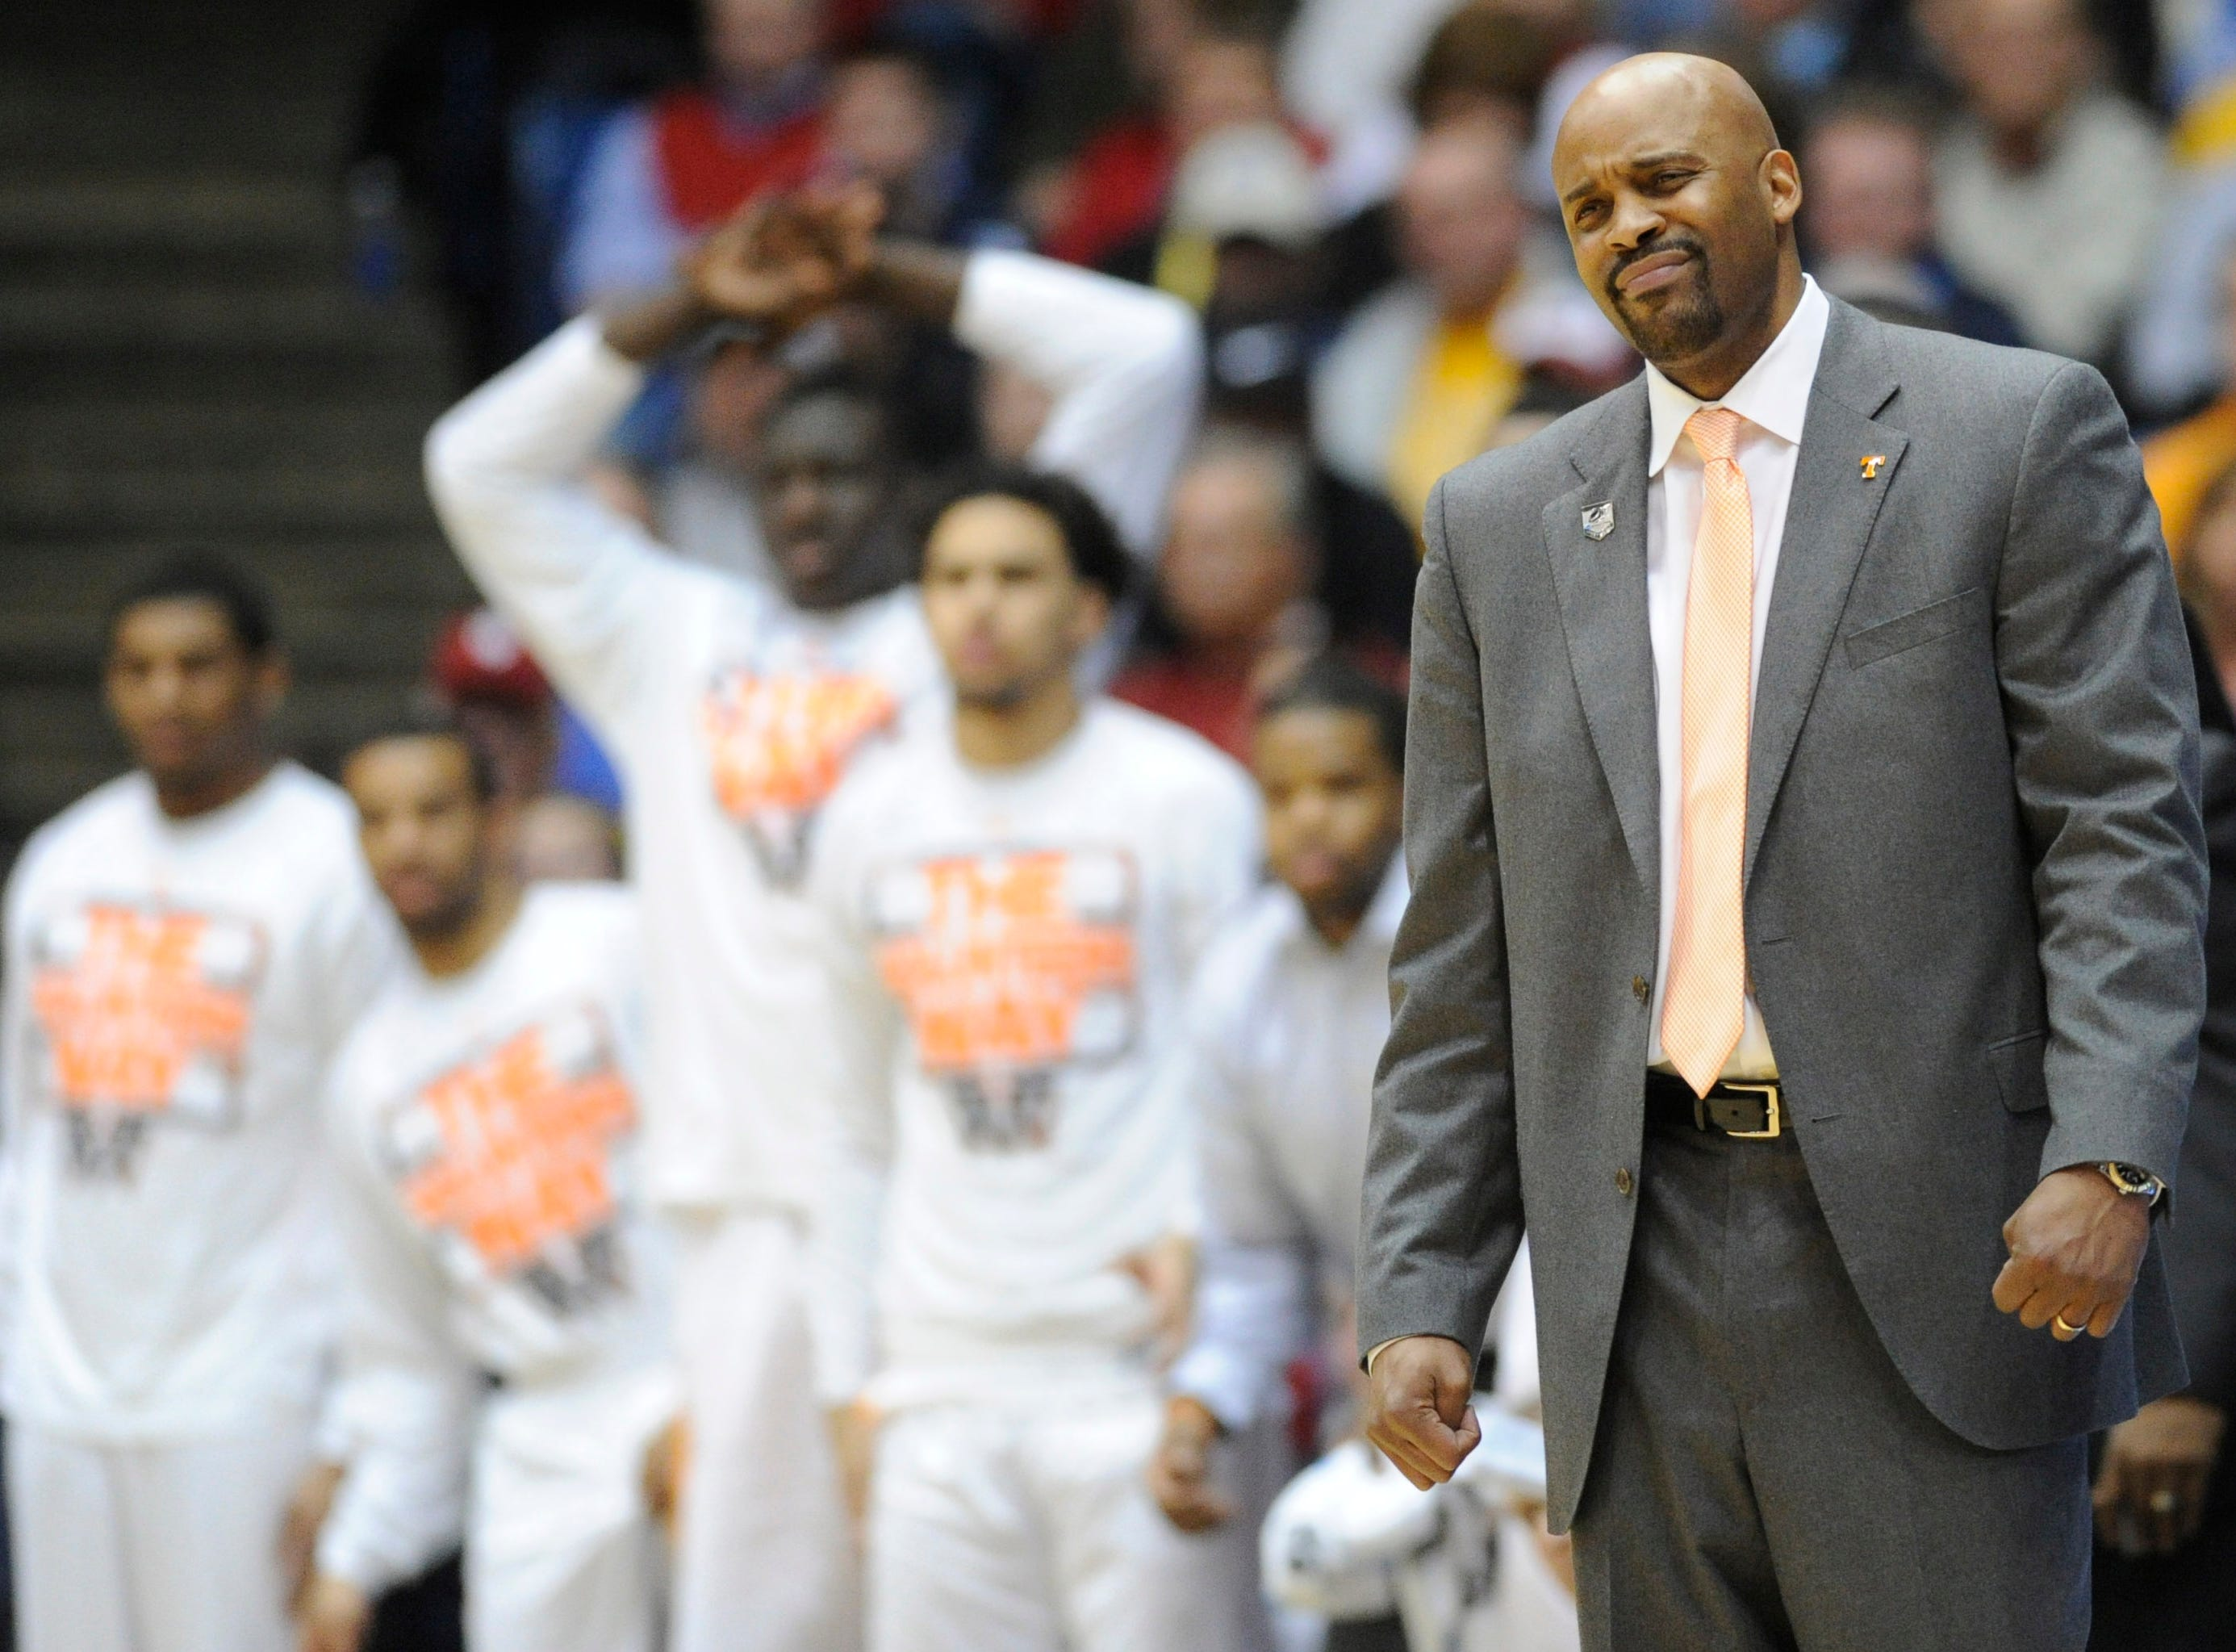 Tennessee head coach Cuonzo Martin and the Tennessee bench react to a missed shot by the Vols during the first half of an NCAA tournament First Four play-in game against Iowa at the University of Dayton Arena in Dayton, Ohio on Wednesday, March 19, 2014.